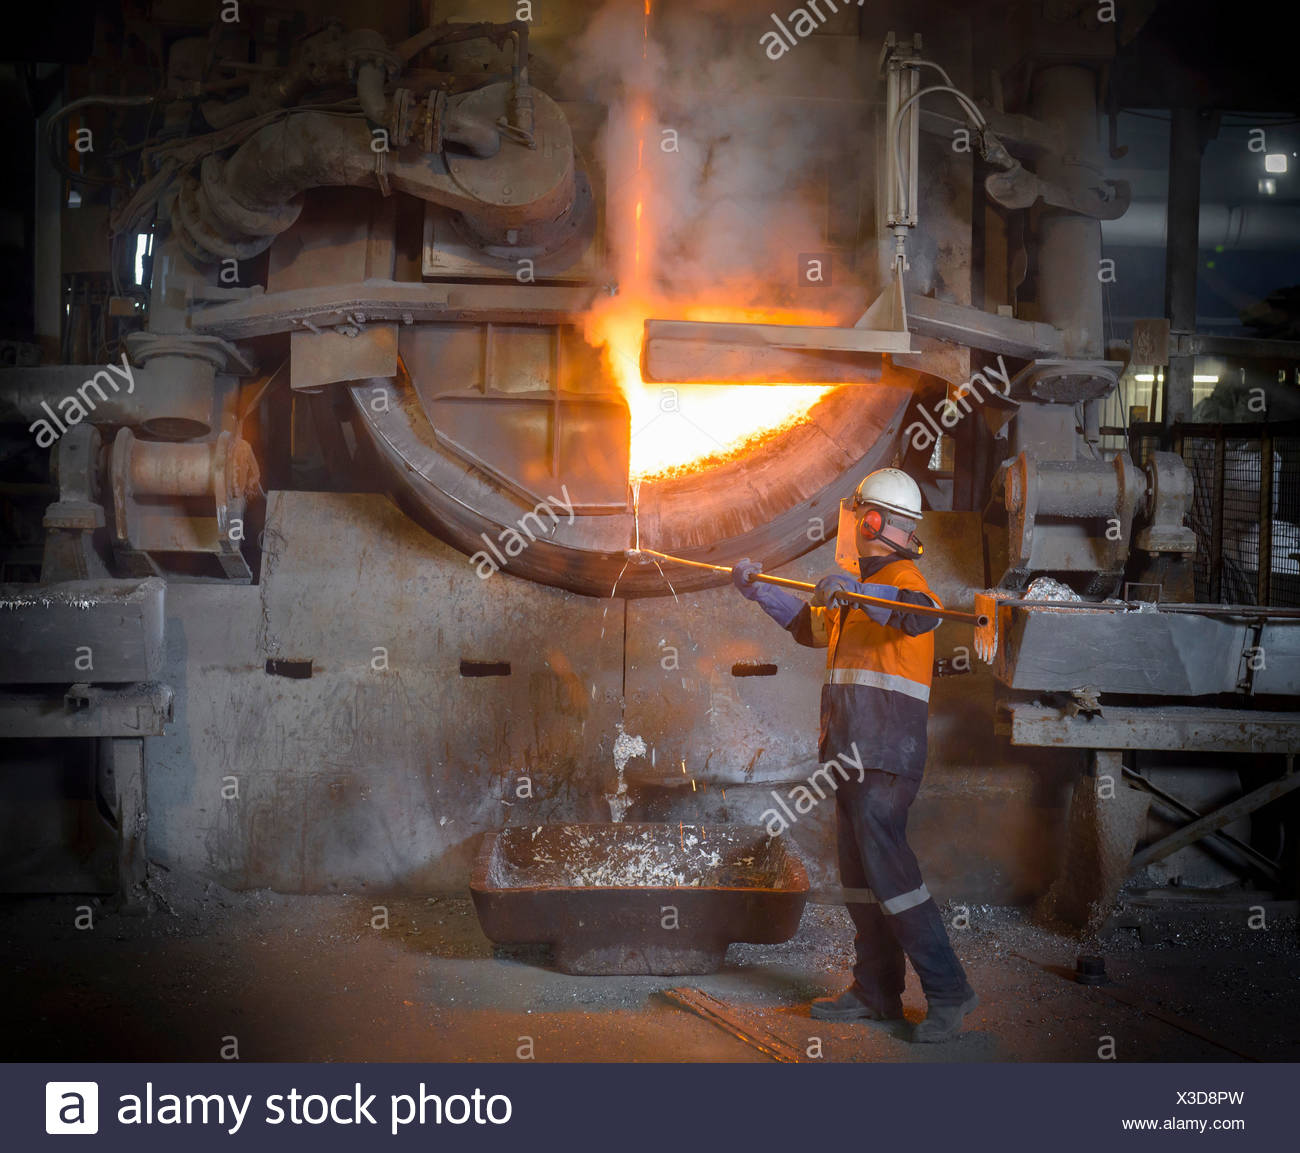 Worker removing liquid aluminum from furnace at recycling plant - Stock Image